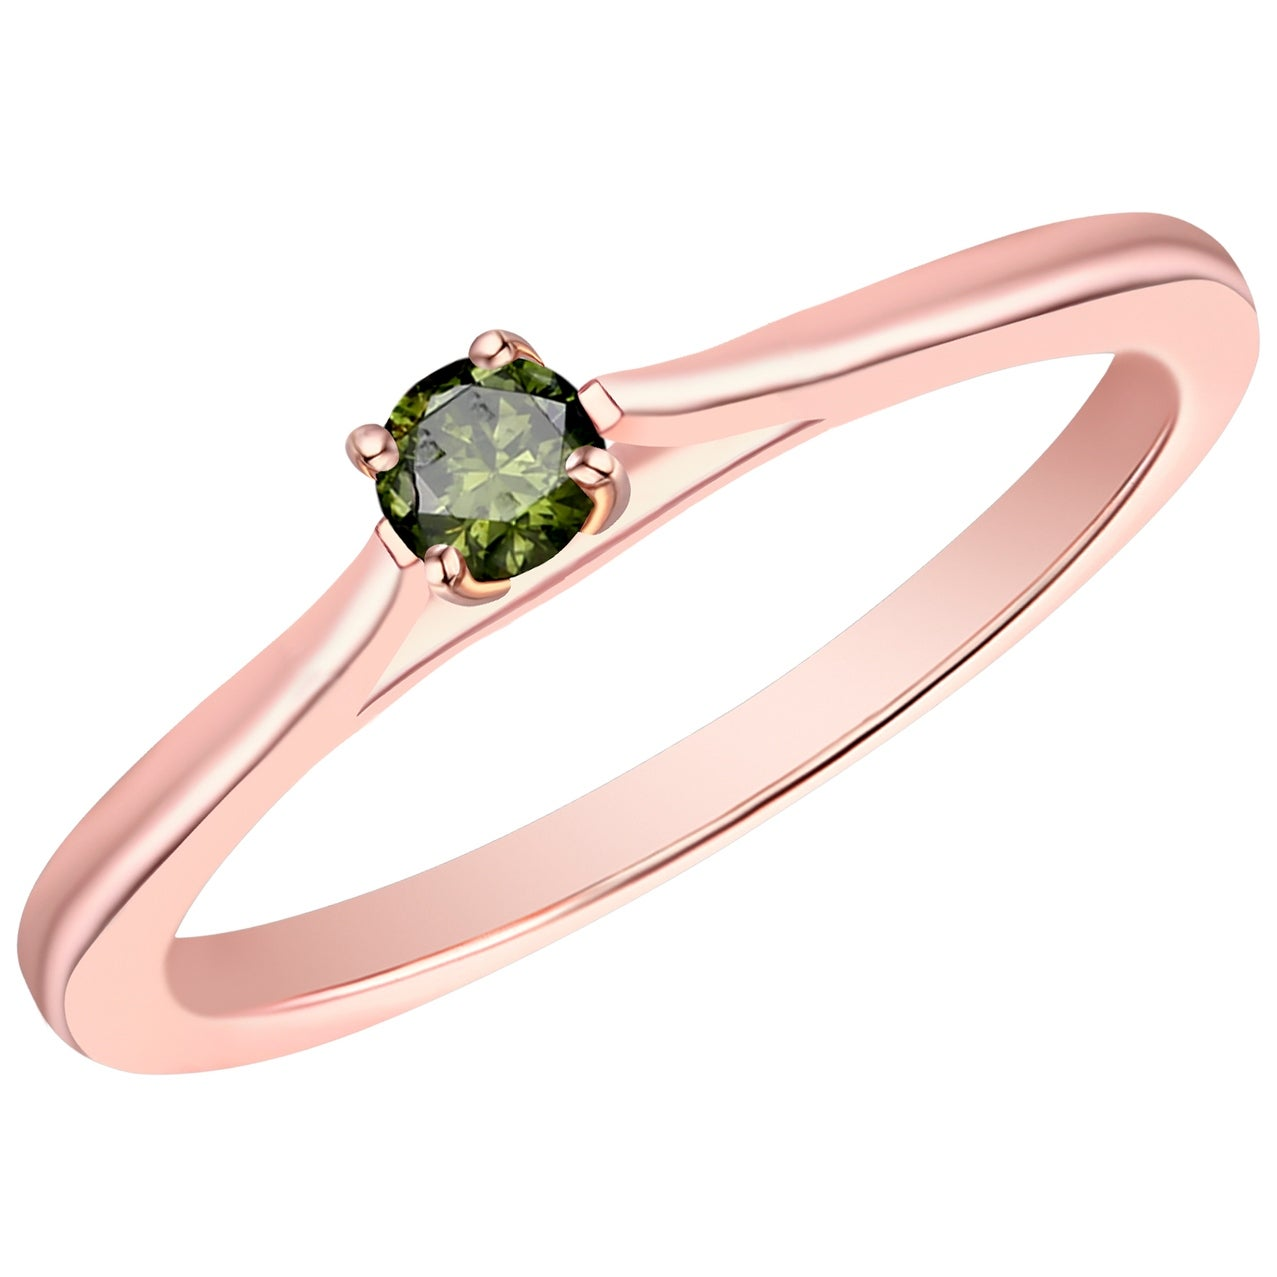 ea4b63b8d61e77 Buy Green Diamond Rings Online at Overstock | Our Best Rings Deals